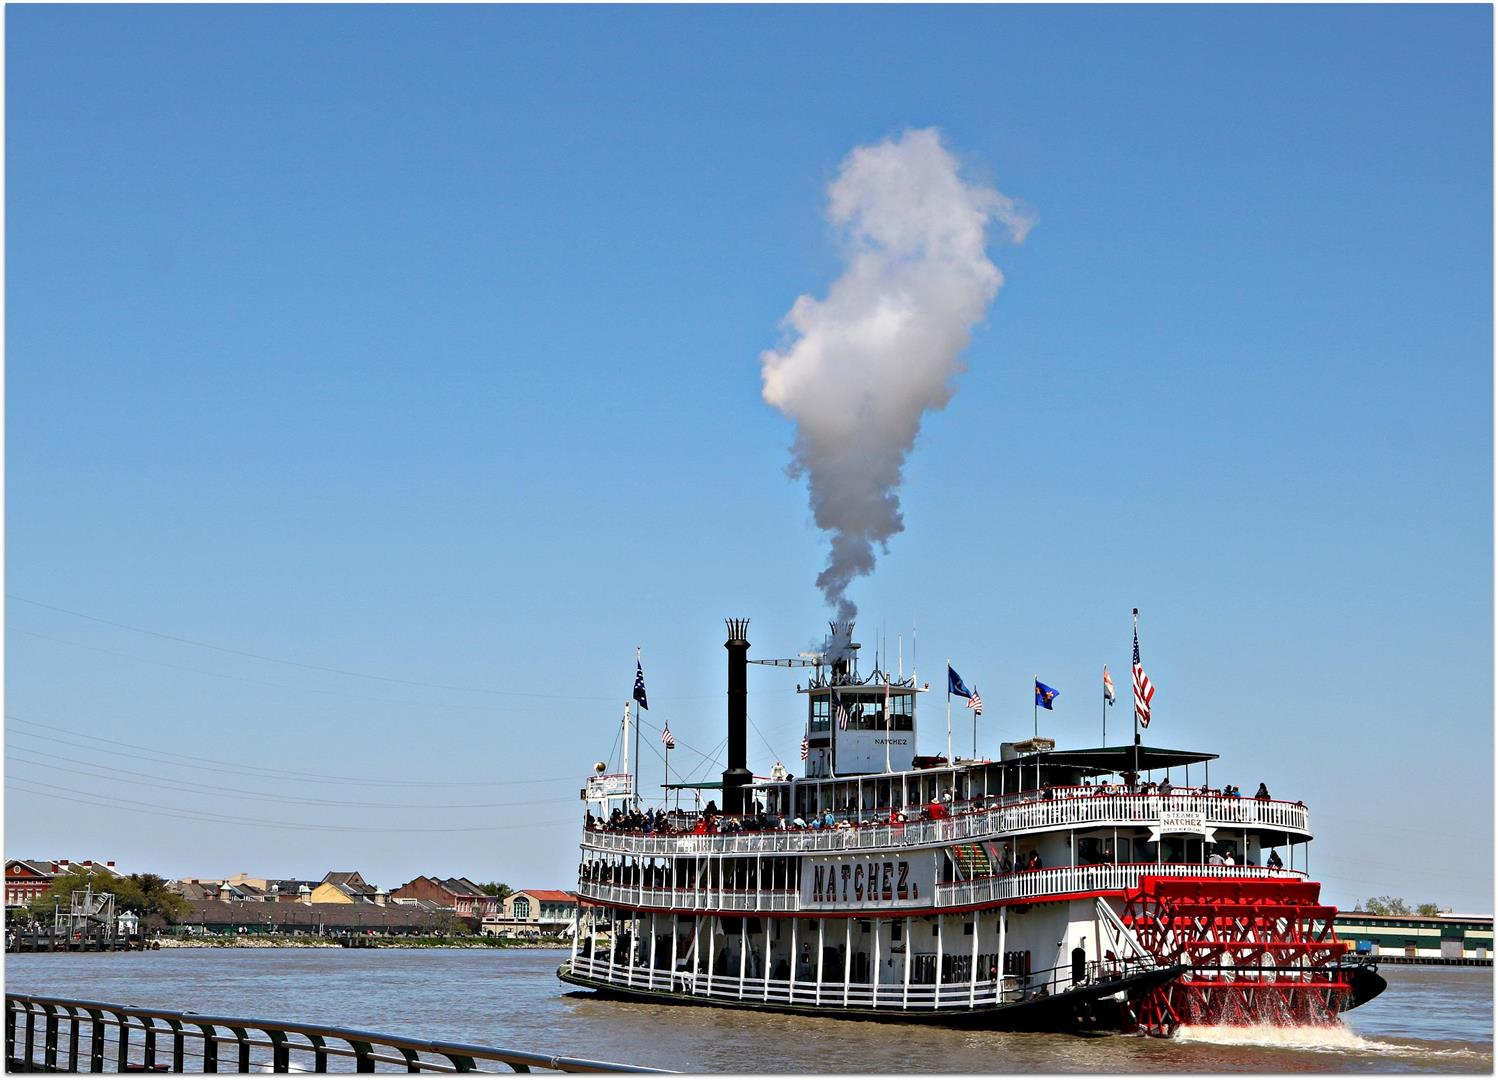 RiverBoatNatchezonMississippi.jpg